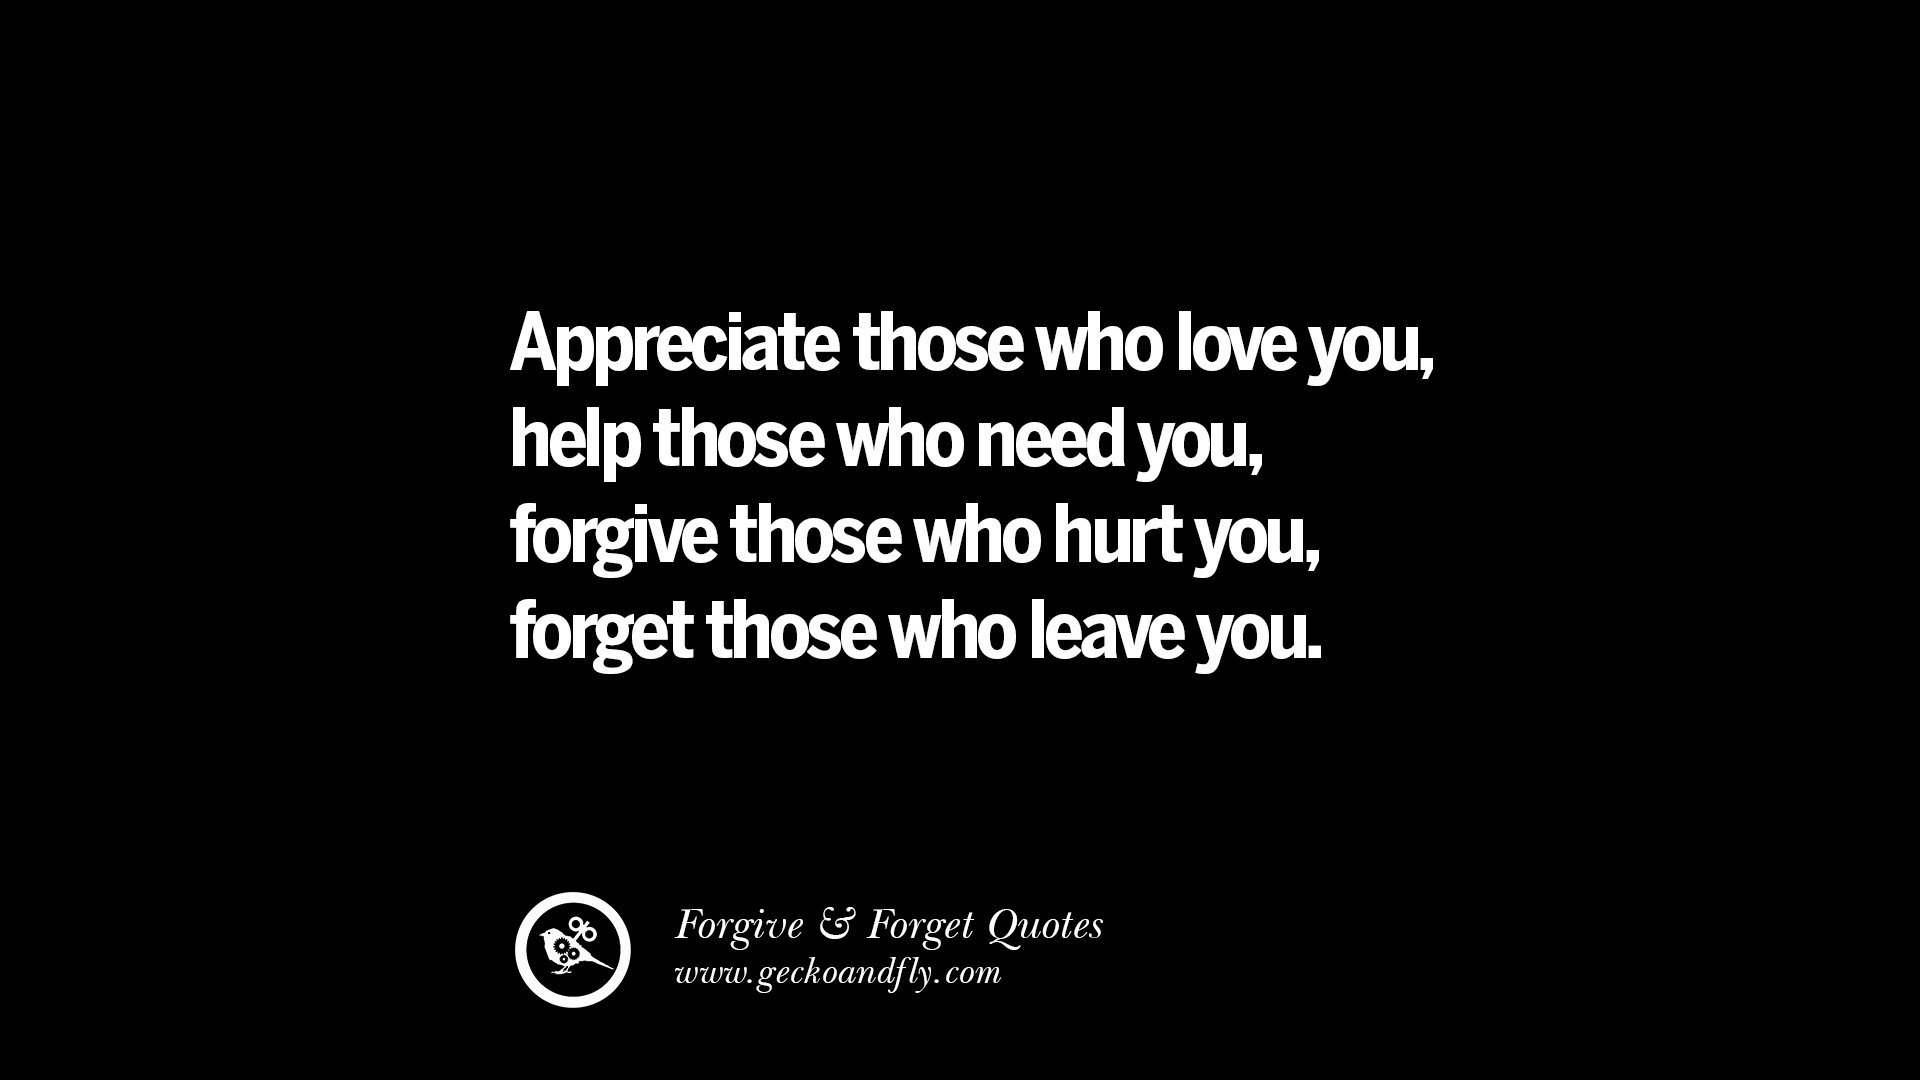 Love And Forgiveness Quotes 50 Quotes On Forgive And Forget When Someone Hurts You In A